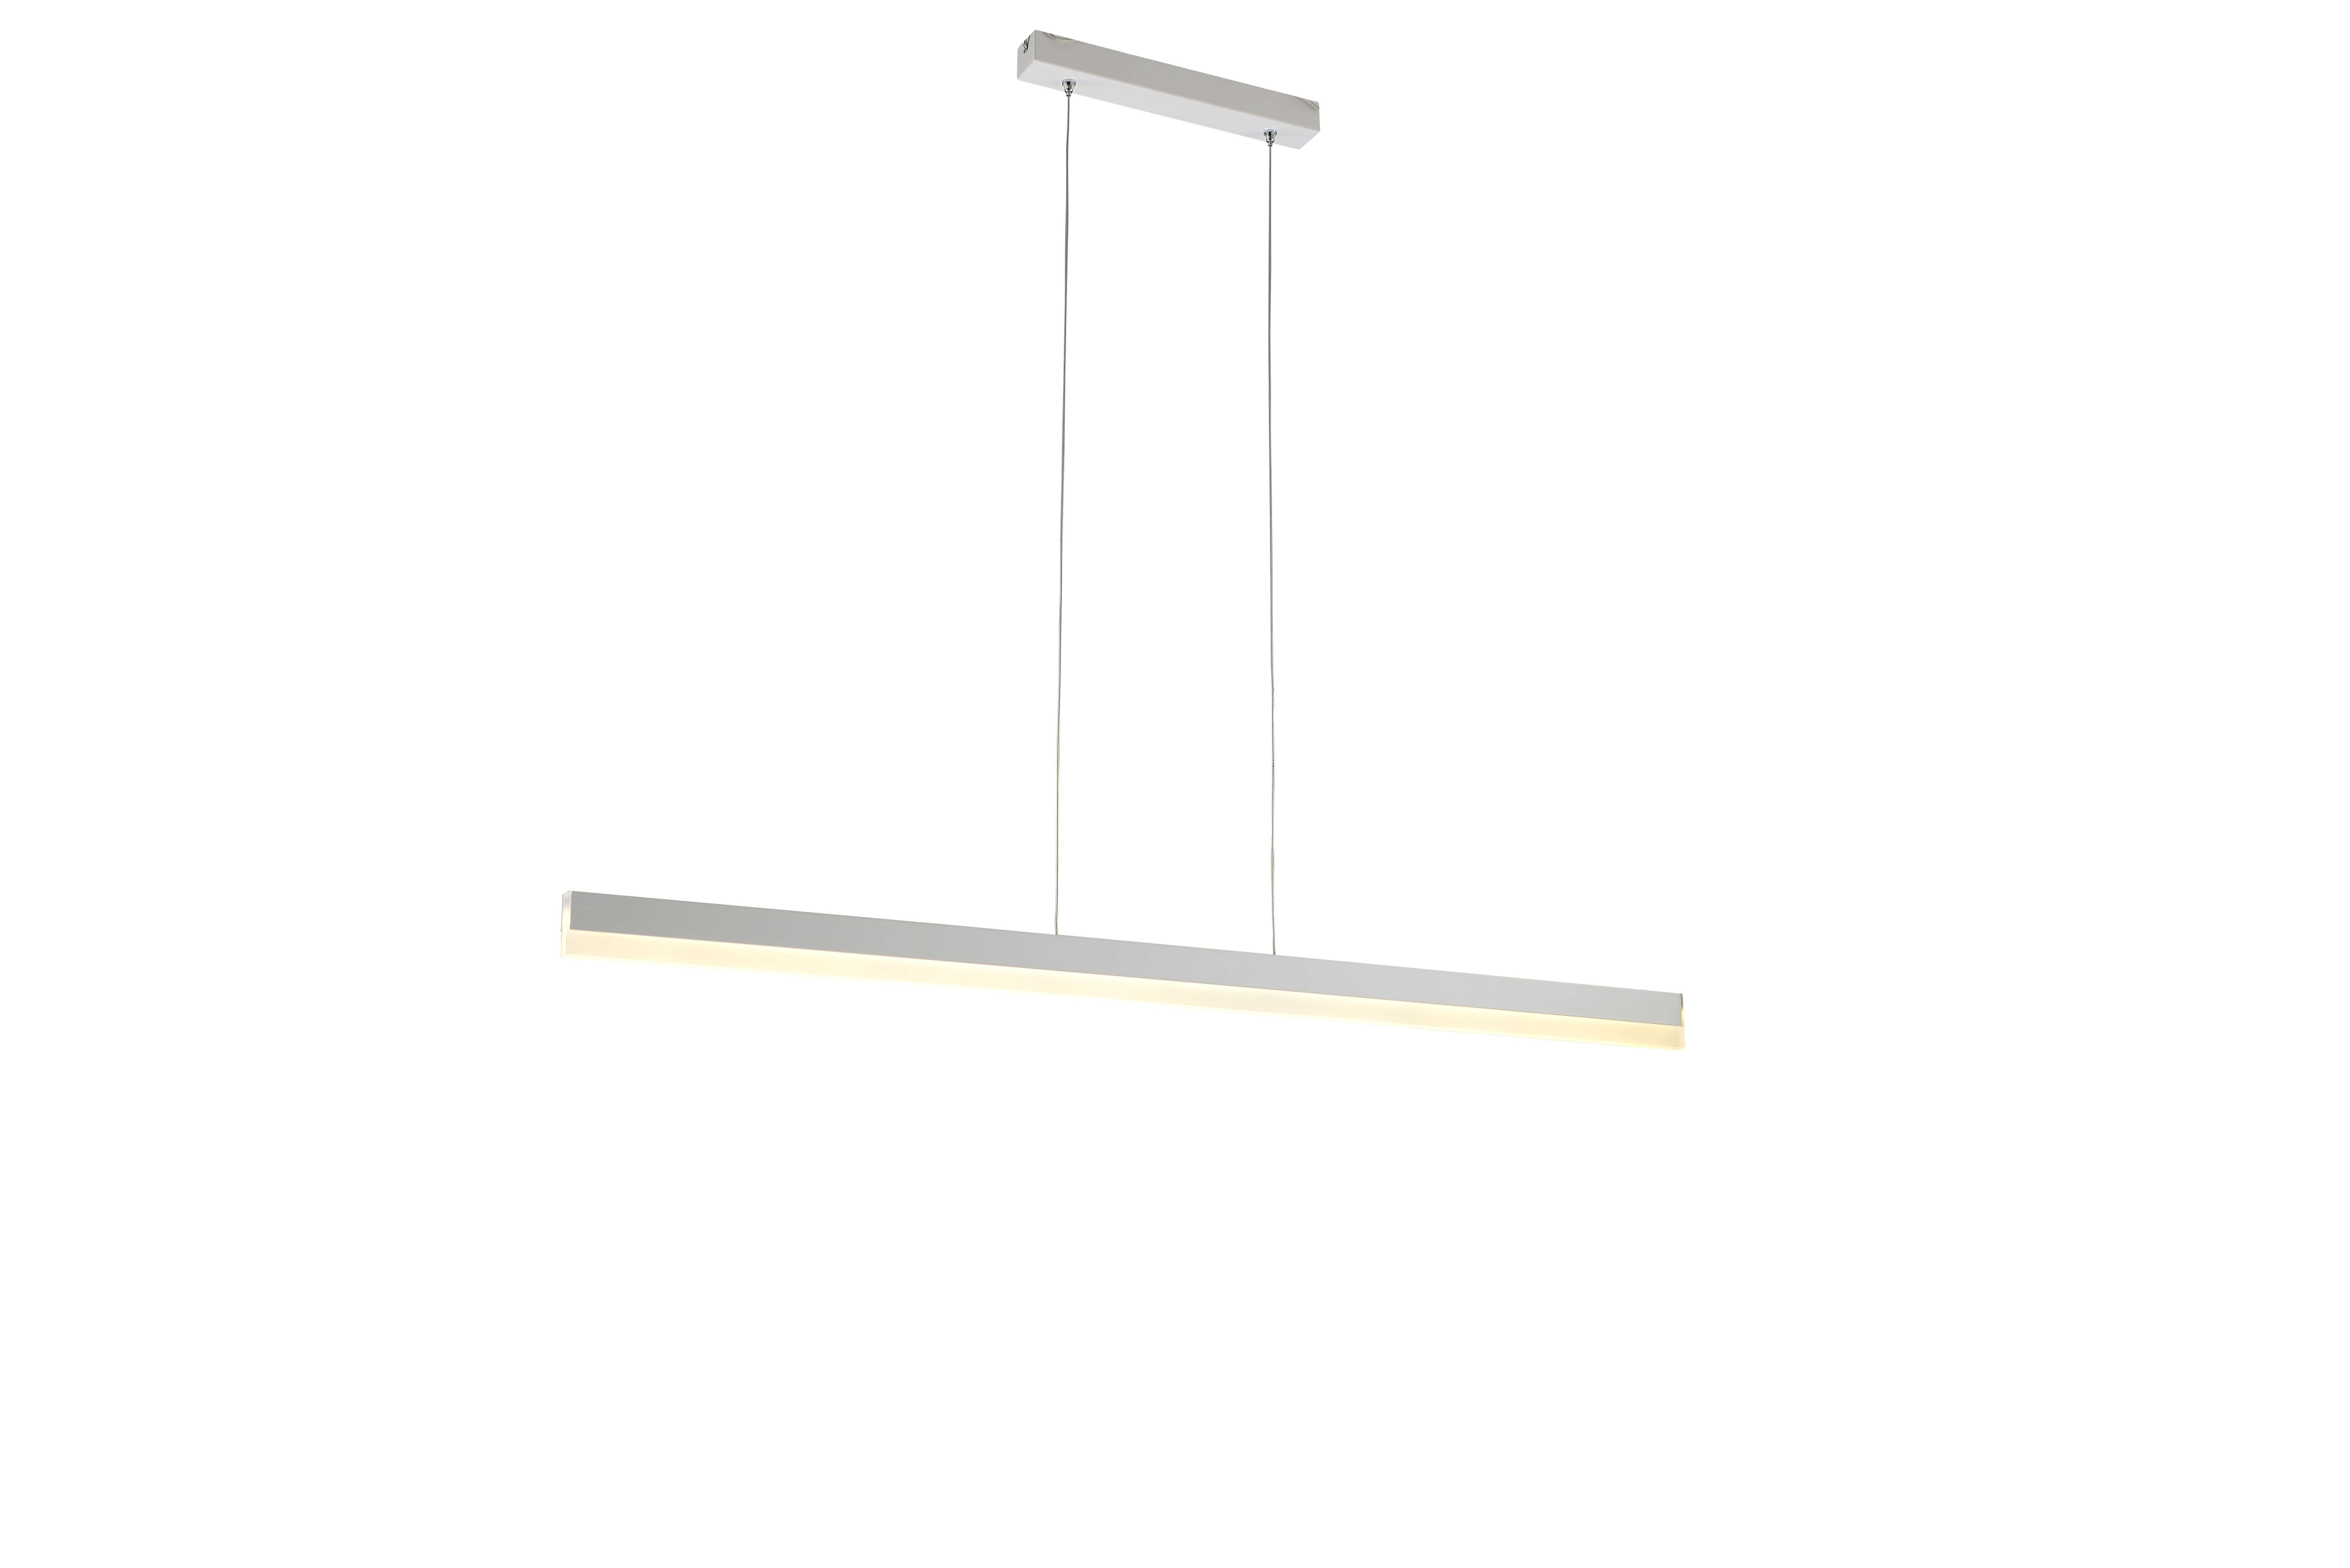 Modern led linear pendant light fixture for home office luxury modern led linear pendant light fixture for home office aloadofball Gallery